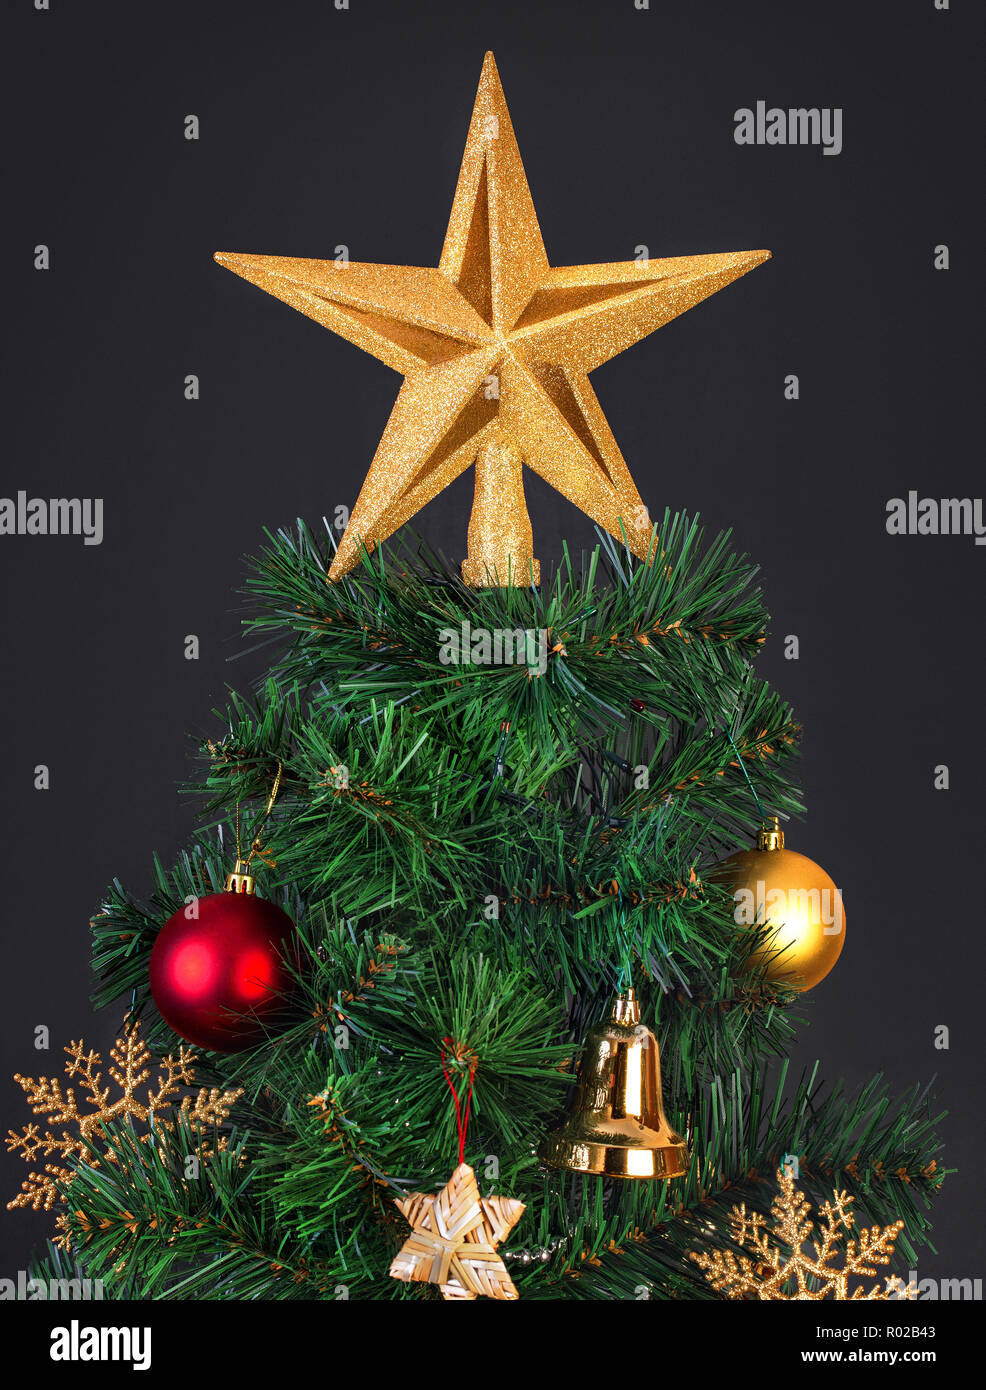 Vintage Artificial Christmas Trees.Gold Red And Straw Vintage Decorations In The Scandinavian Style On